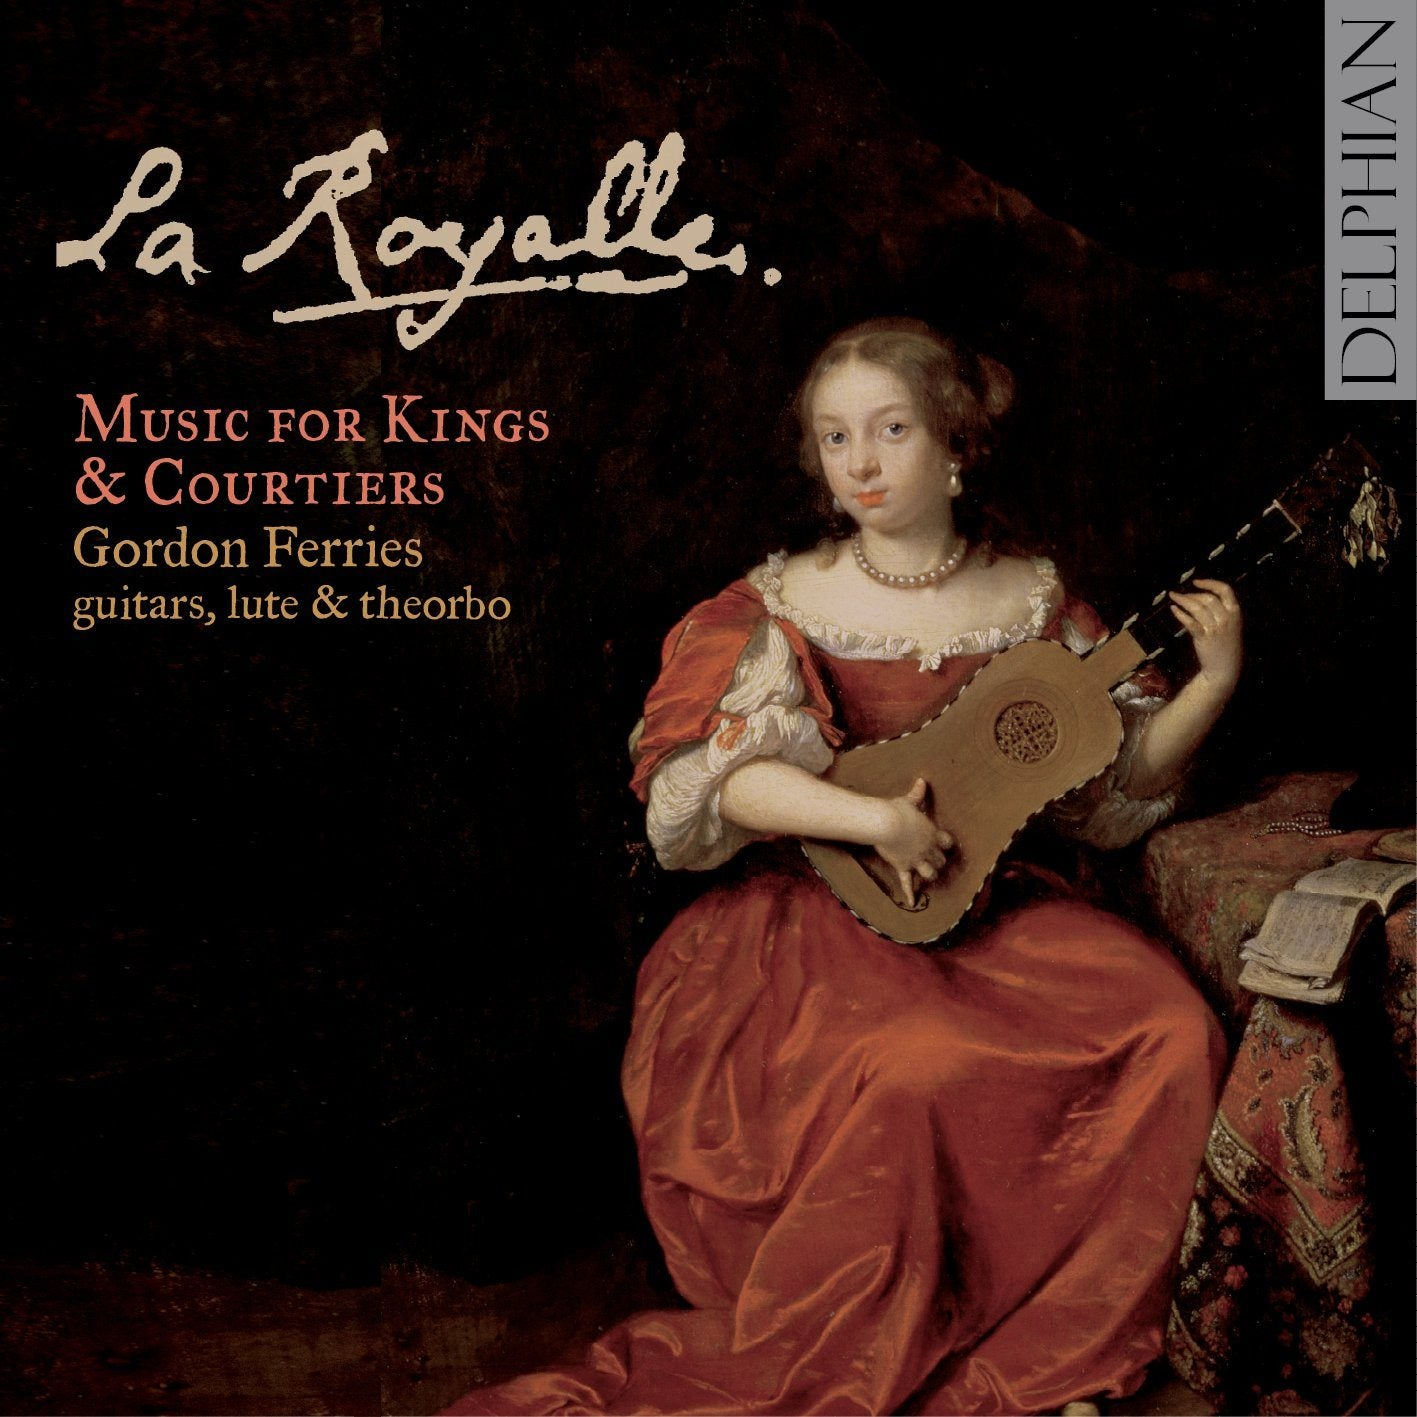 La Royalle: Music for Kings and Courtiers CD Delphian Records